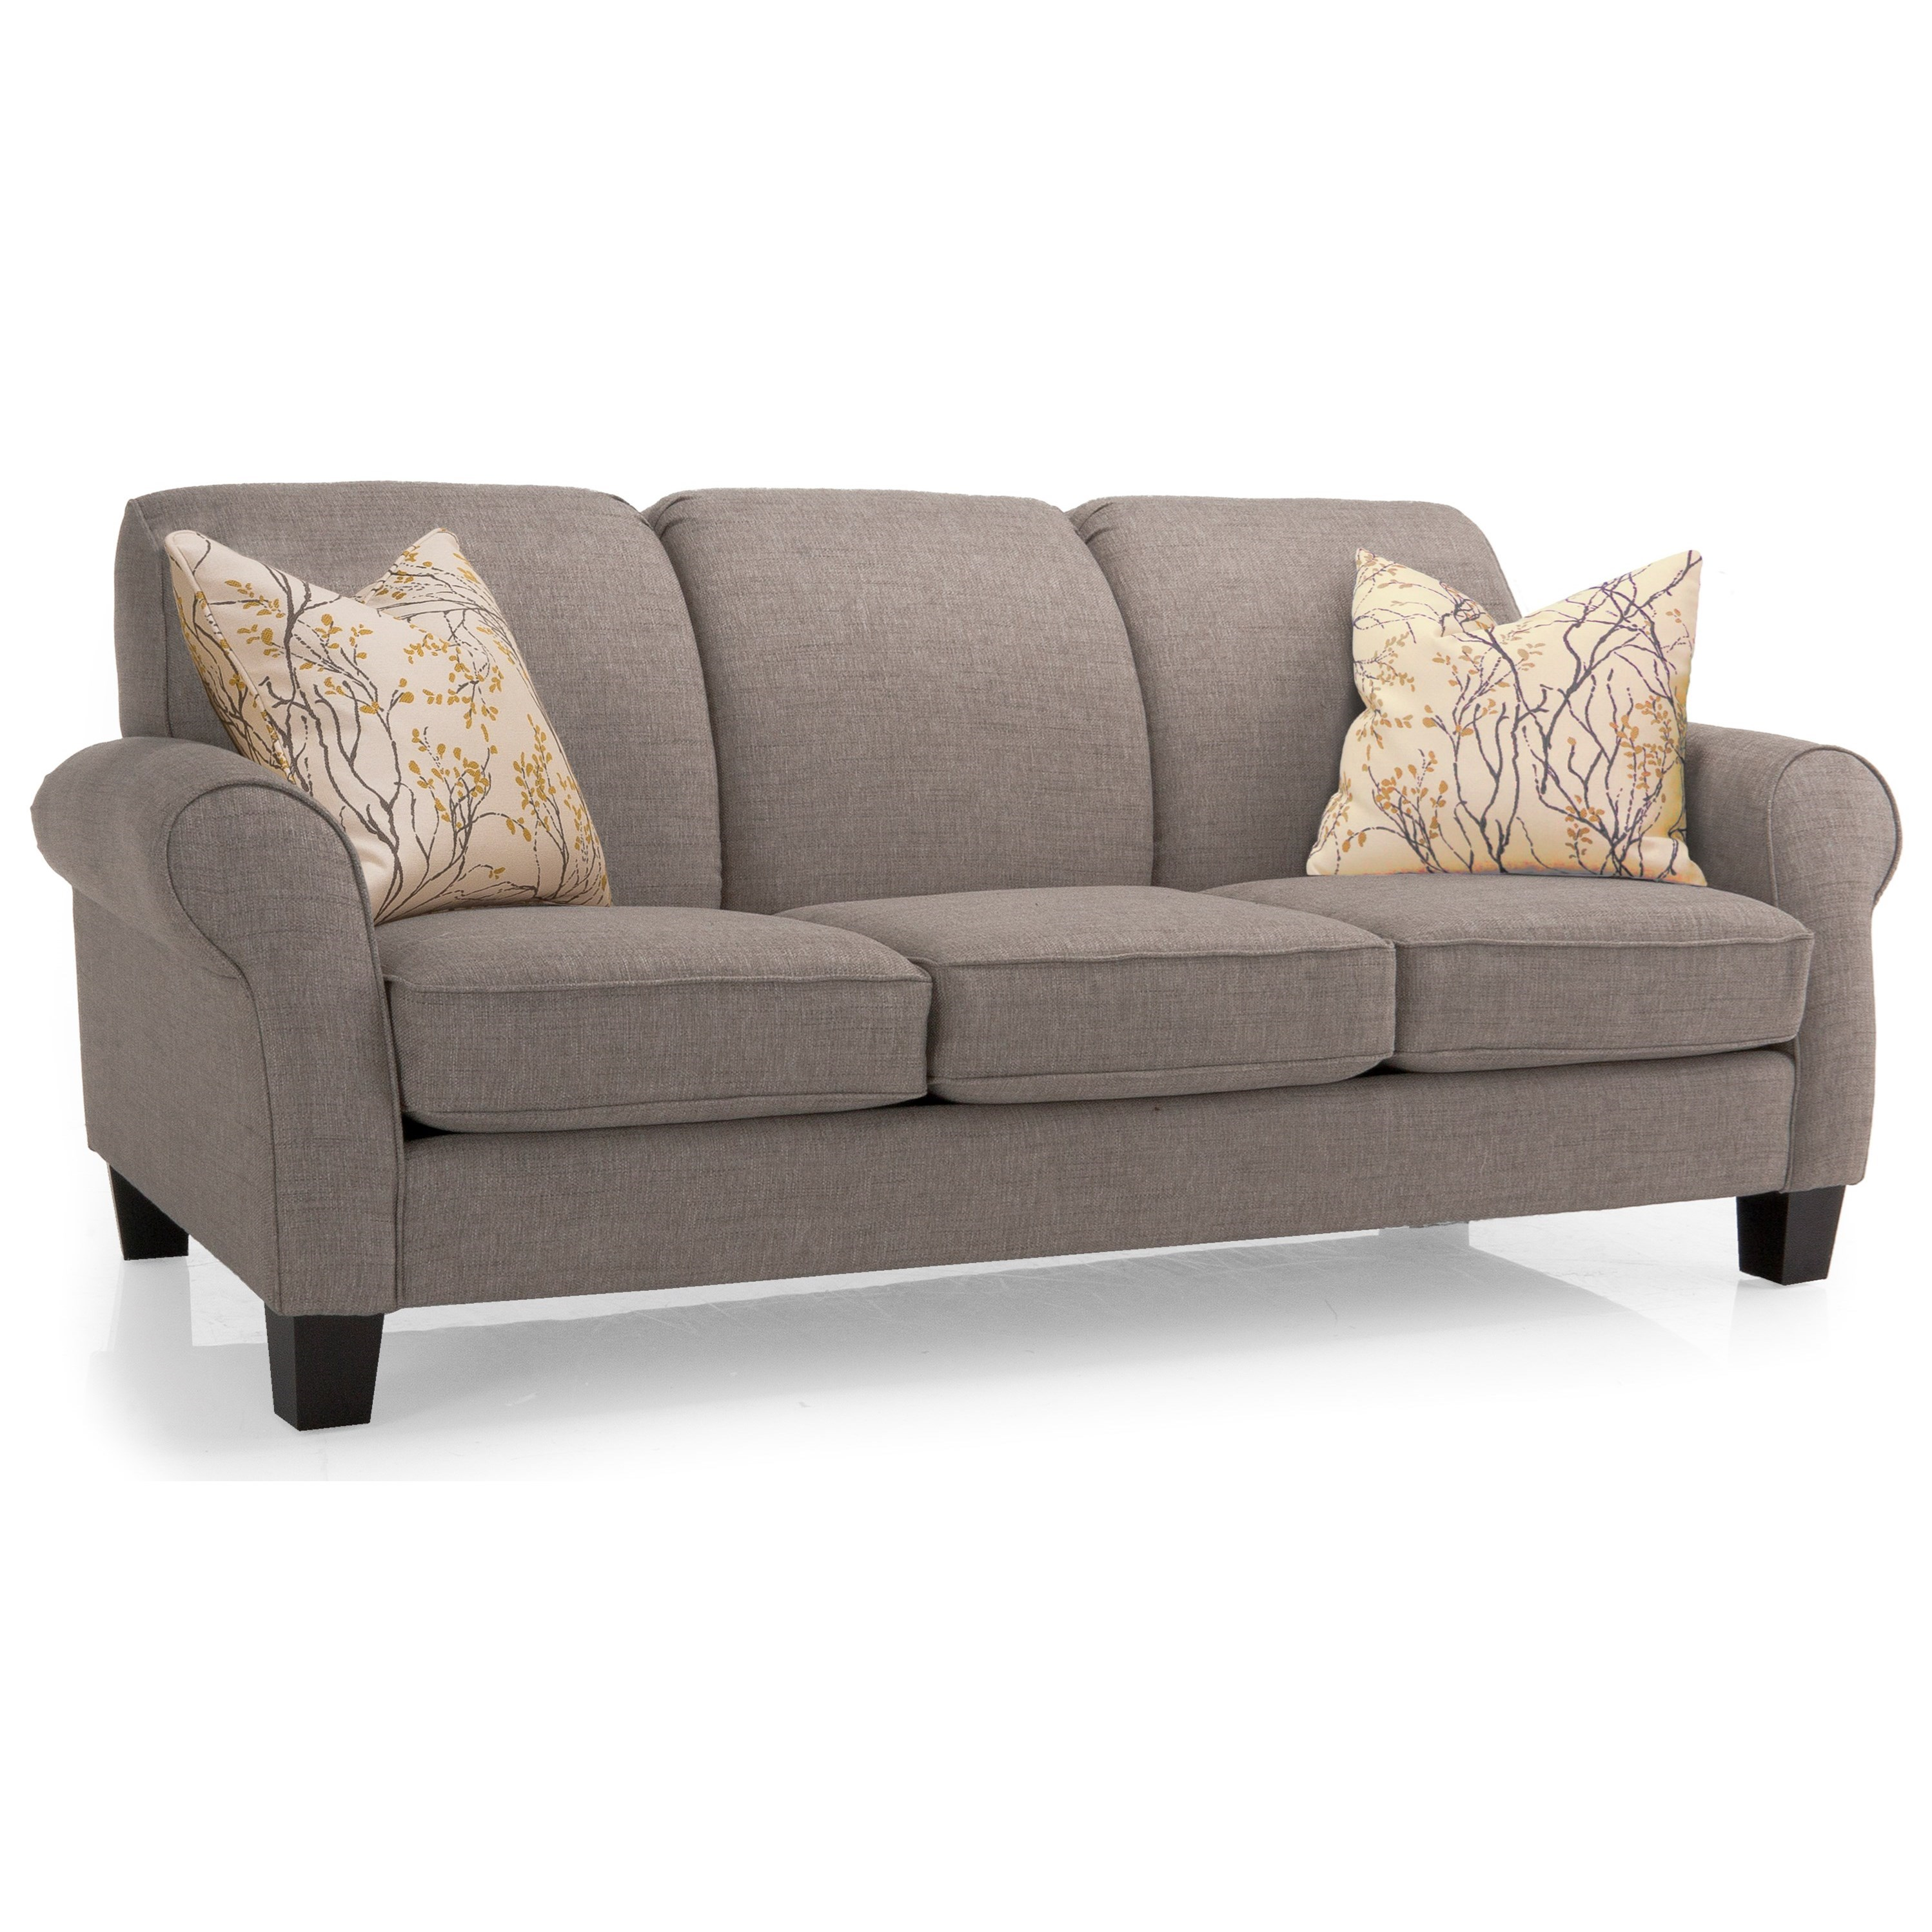 2025 Sofa by Decor-Rest at Stoney Creek Furniture